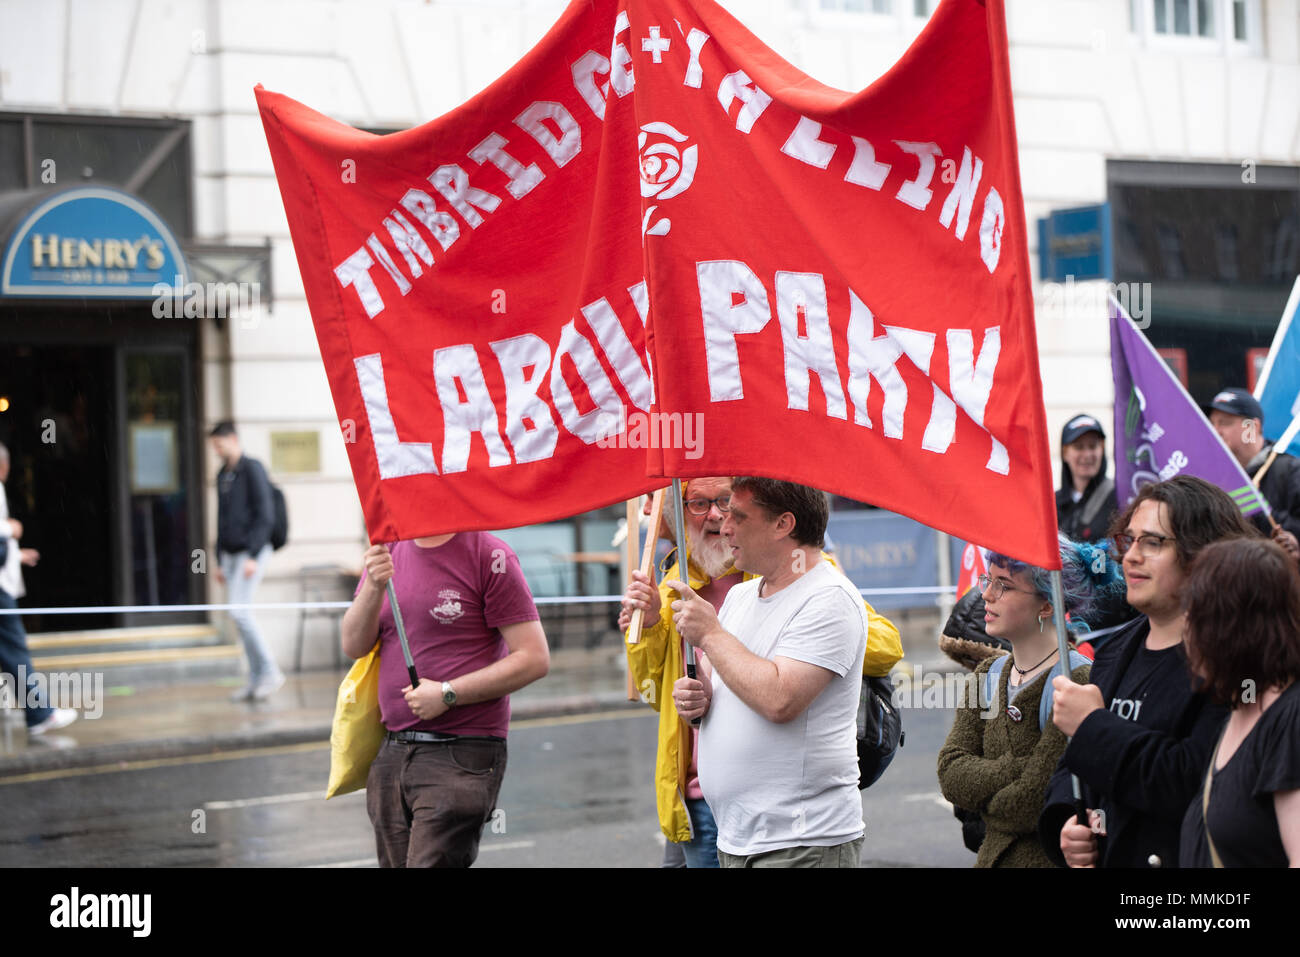 Trade Union rally in central London - Stock Image